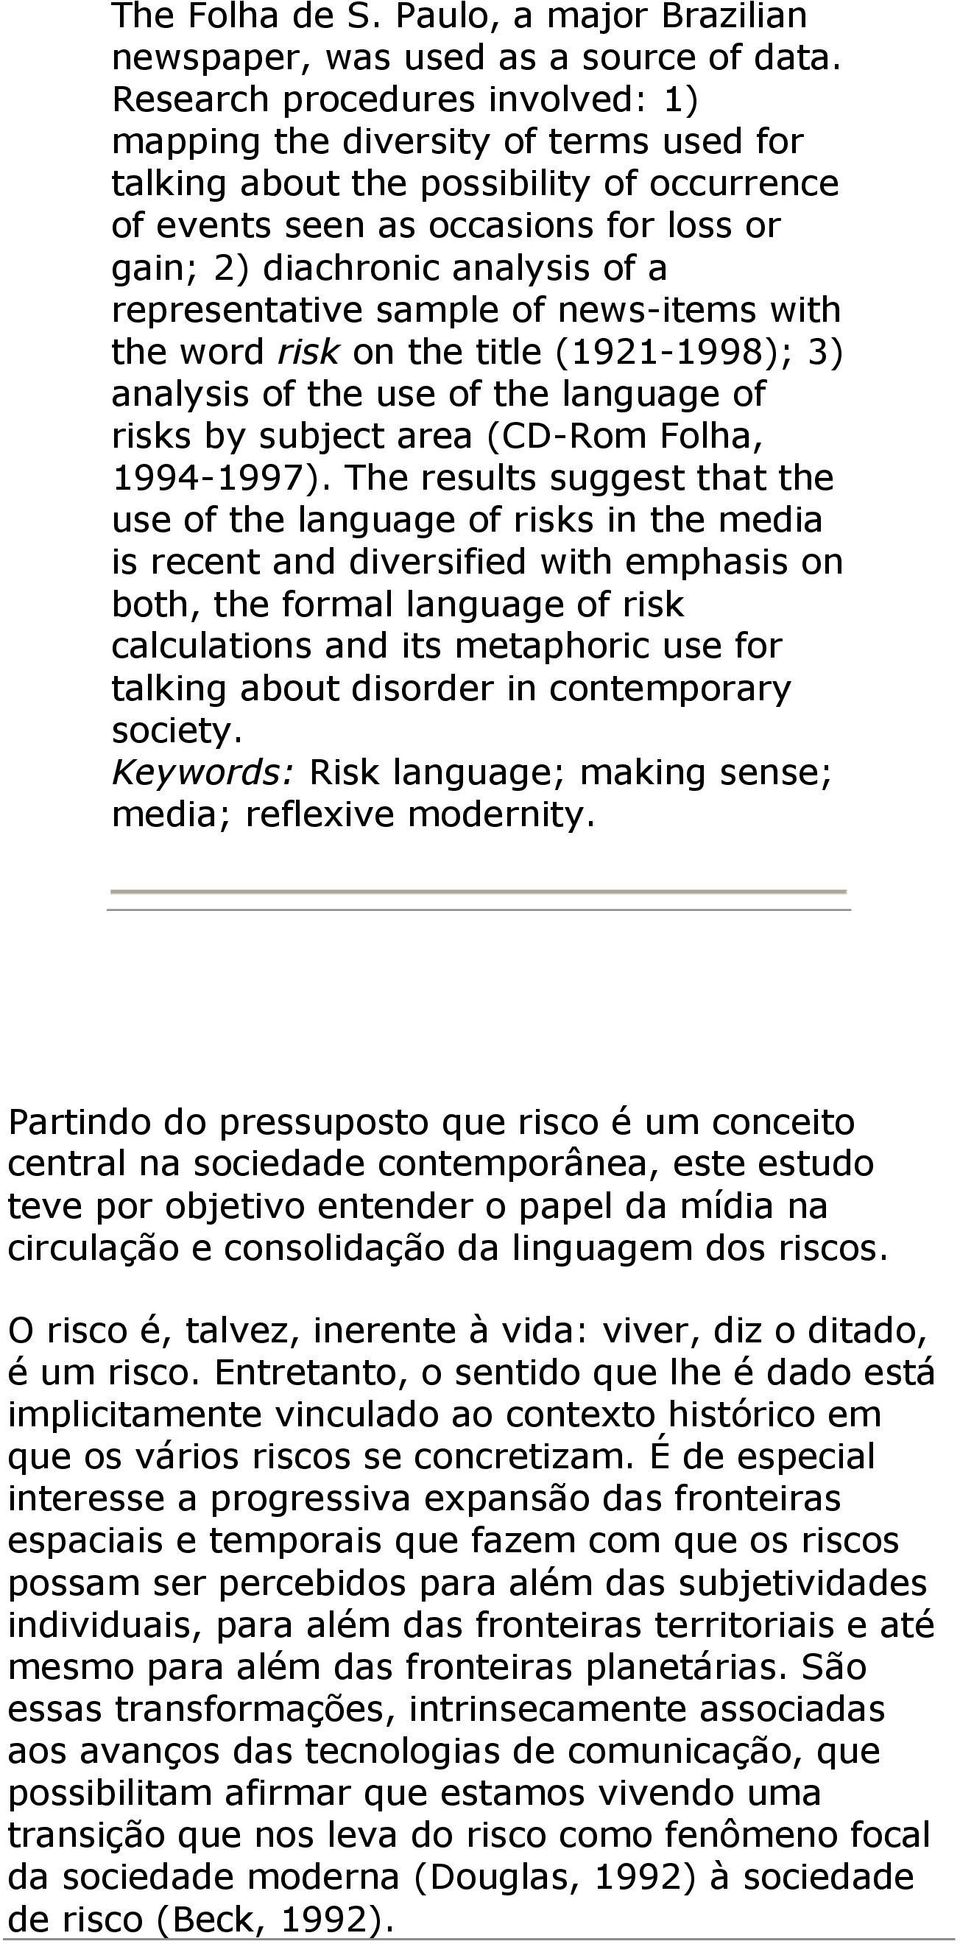 representative sample of news-items with the word risk on the title (1921-1998); 3) analysis of the use of the language of risks by subject area (CD-Rom Folha, 1994-1997).